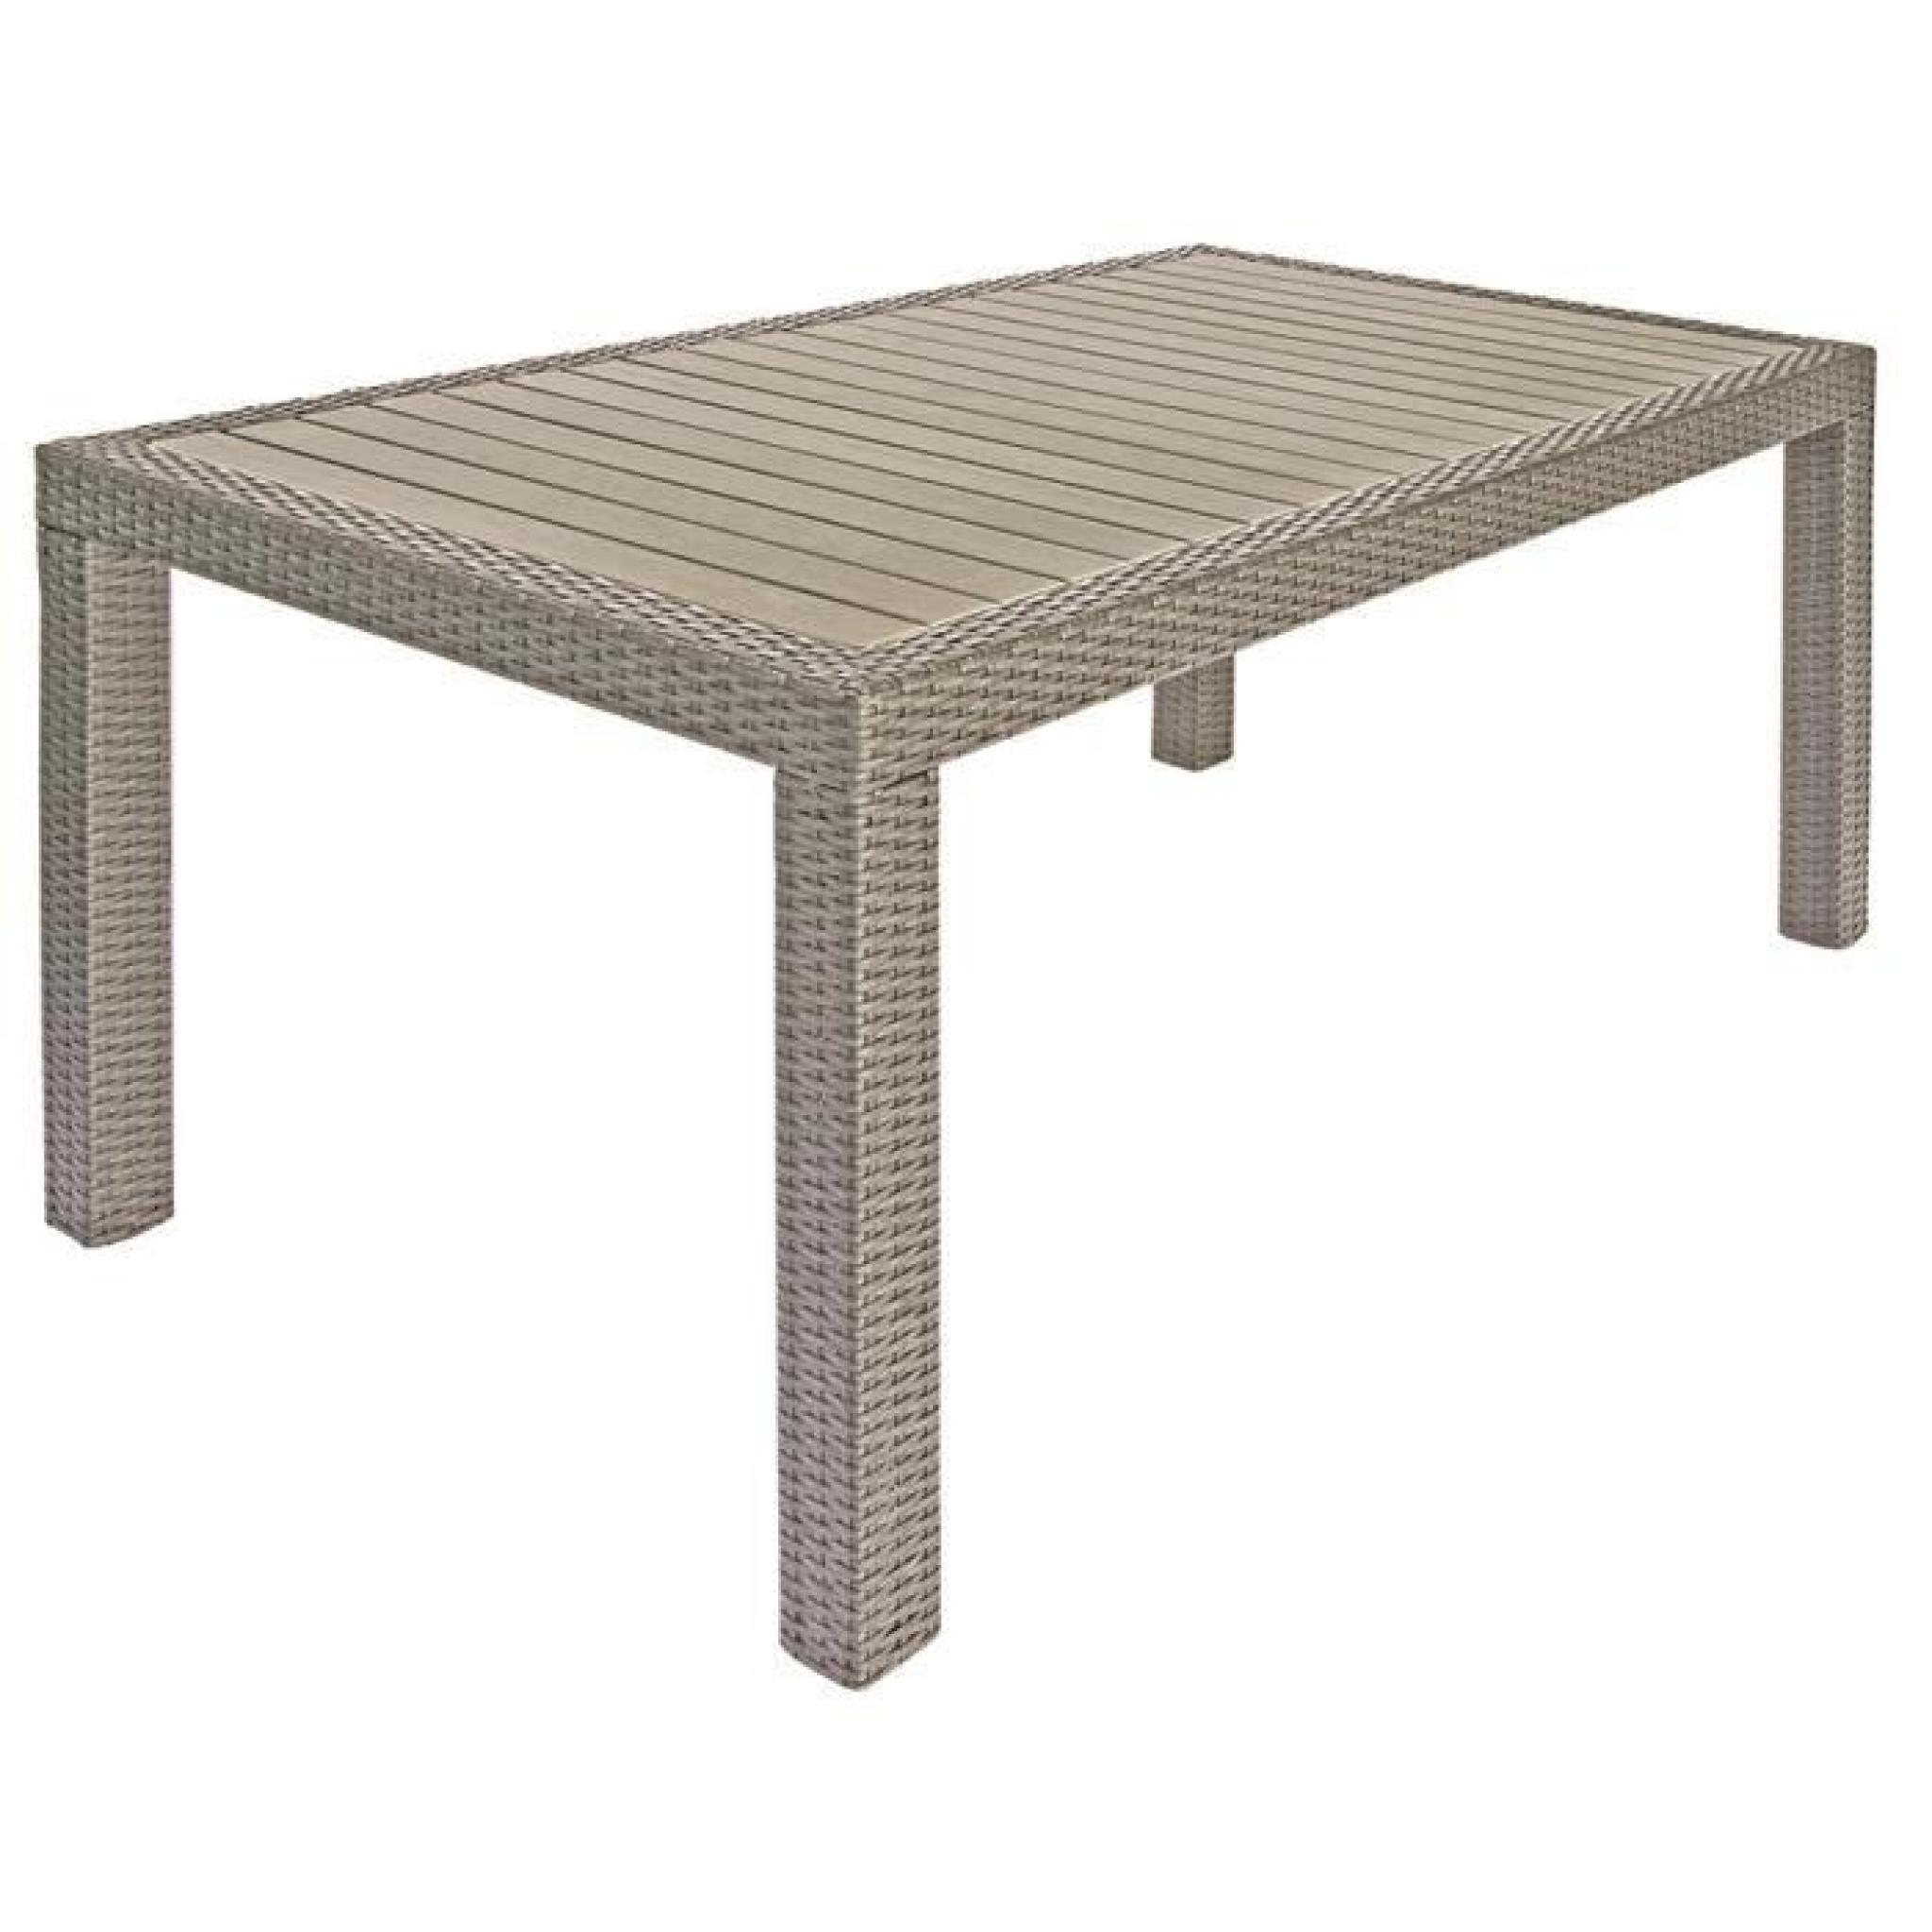 Table jardin en Tressage Wicker 7 mm coloris havane - Dim : H 74 x L 150 x P 90 cm